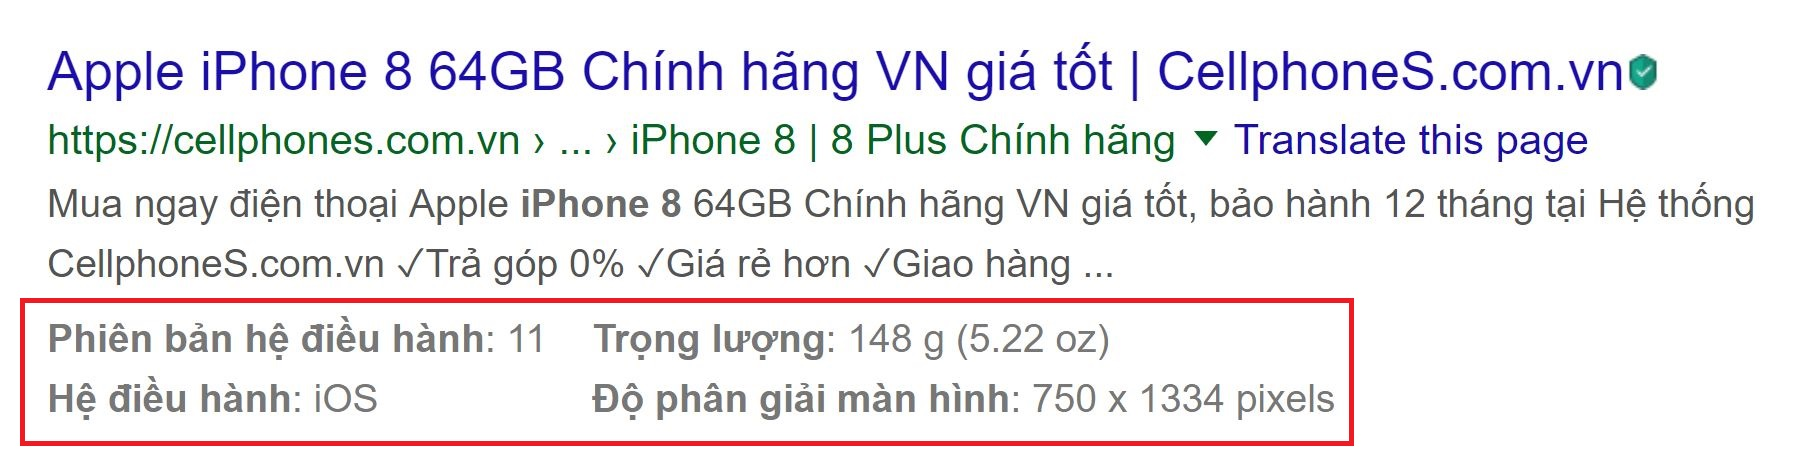 Rich Snippets sản phẩm apple iPhone 8 64GB